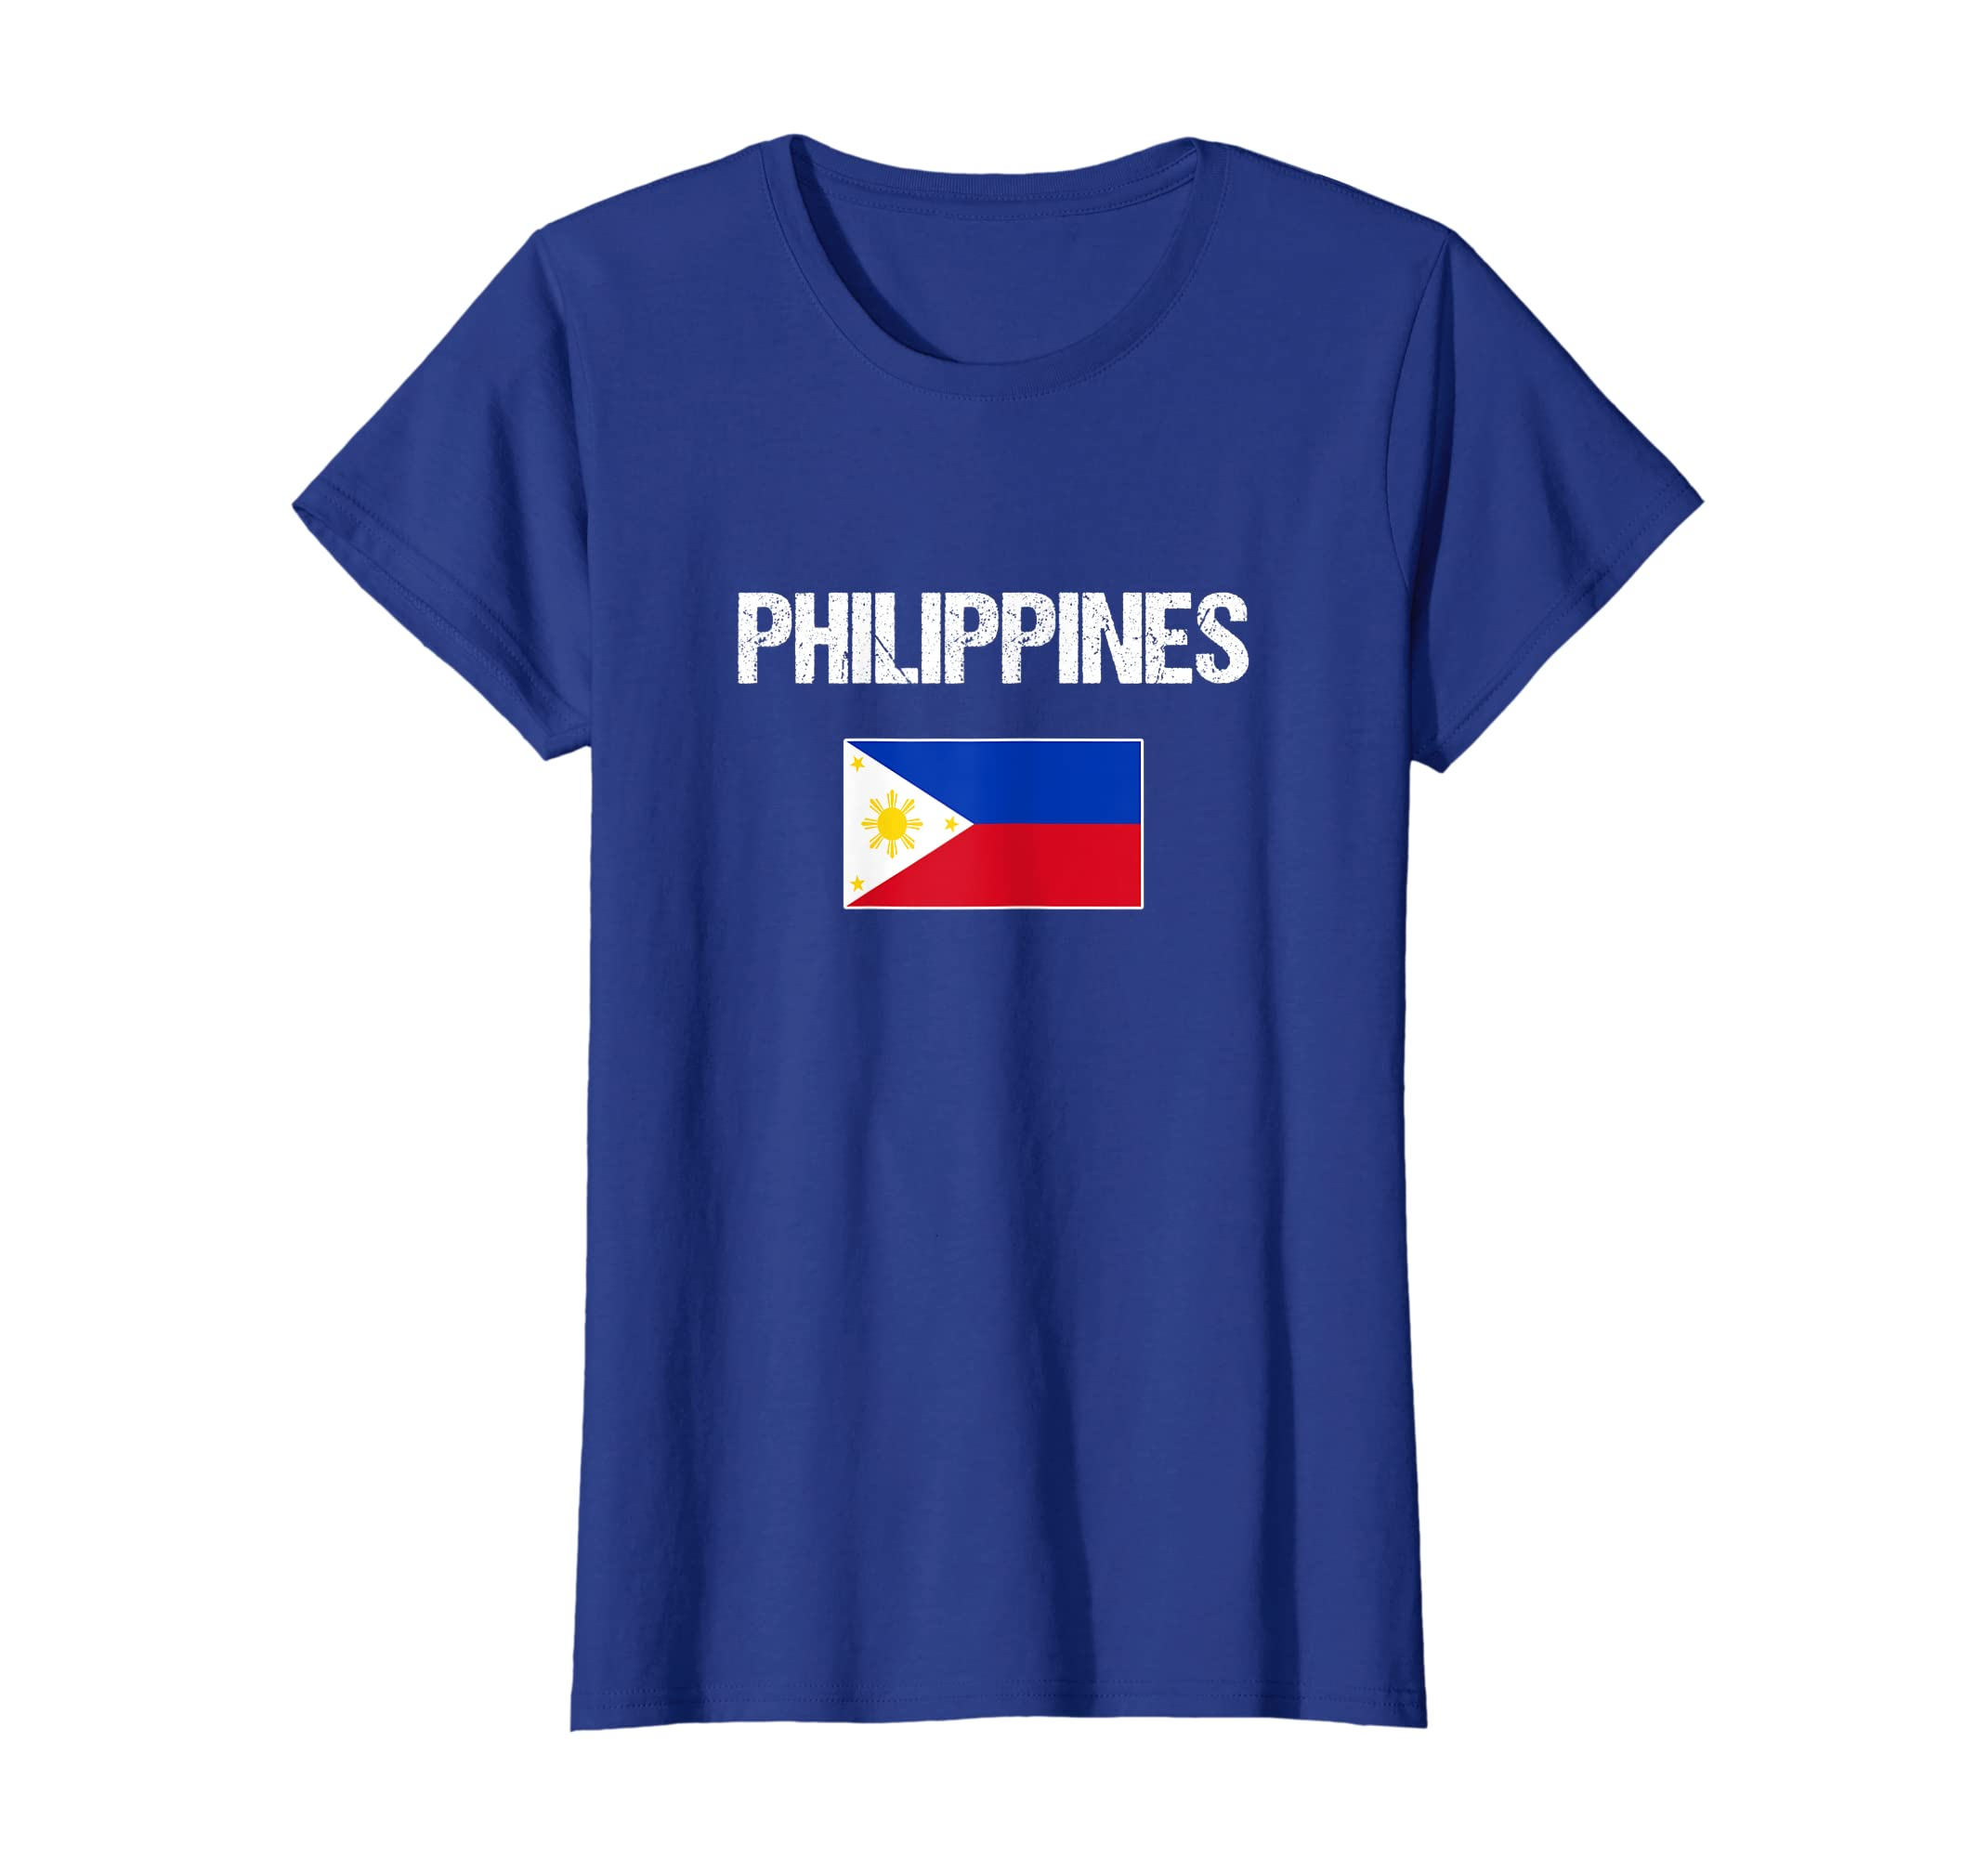 89d88e53b Amazon.com  Philippines T-shirt Filipino Flag - For Men Women Youth Kids   Clothing